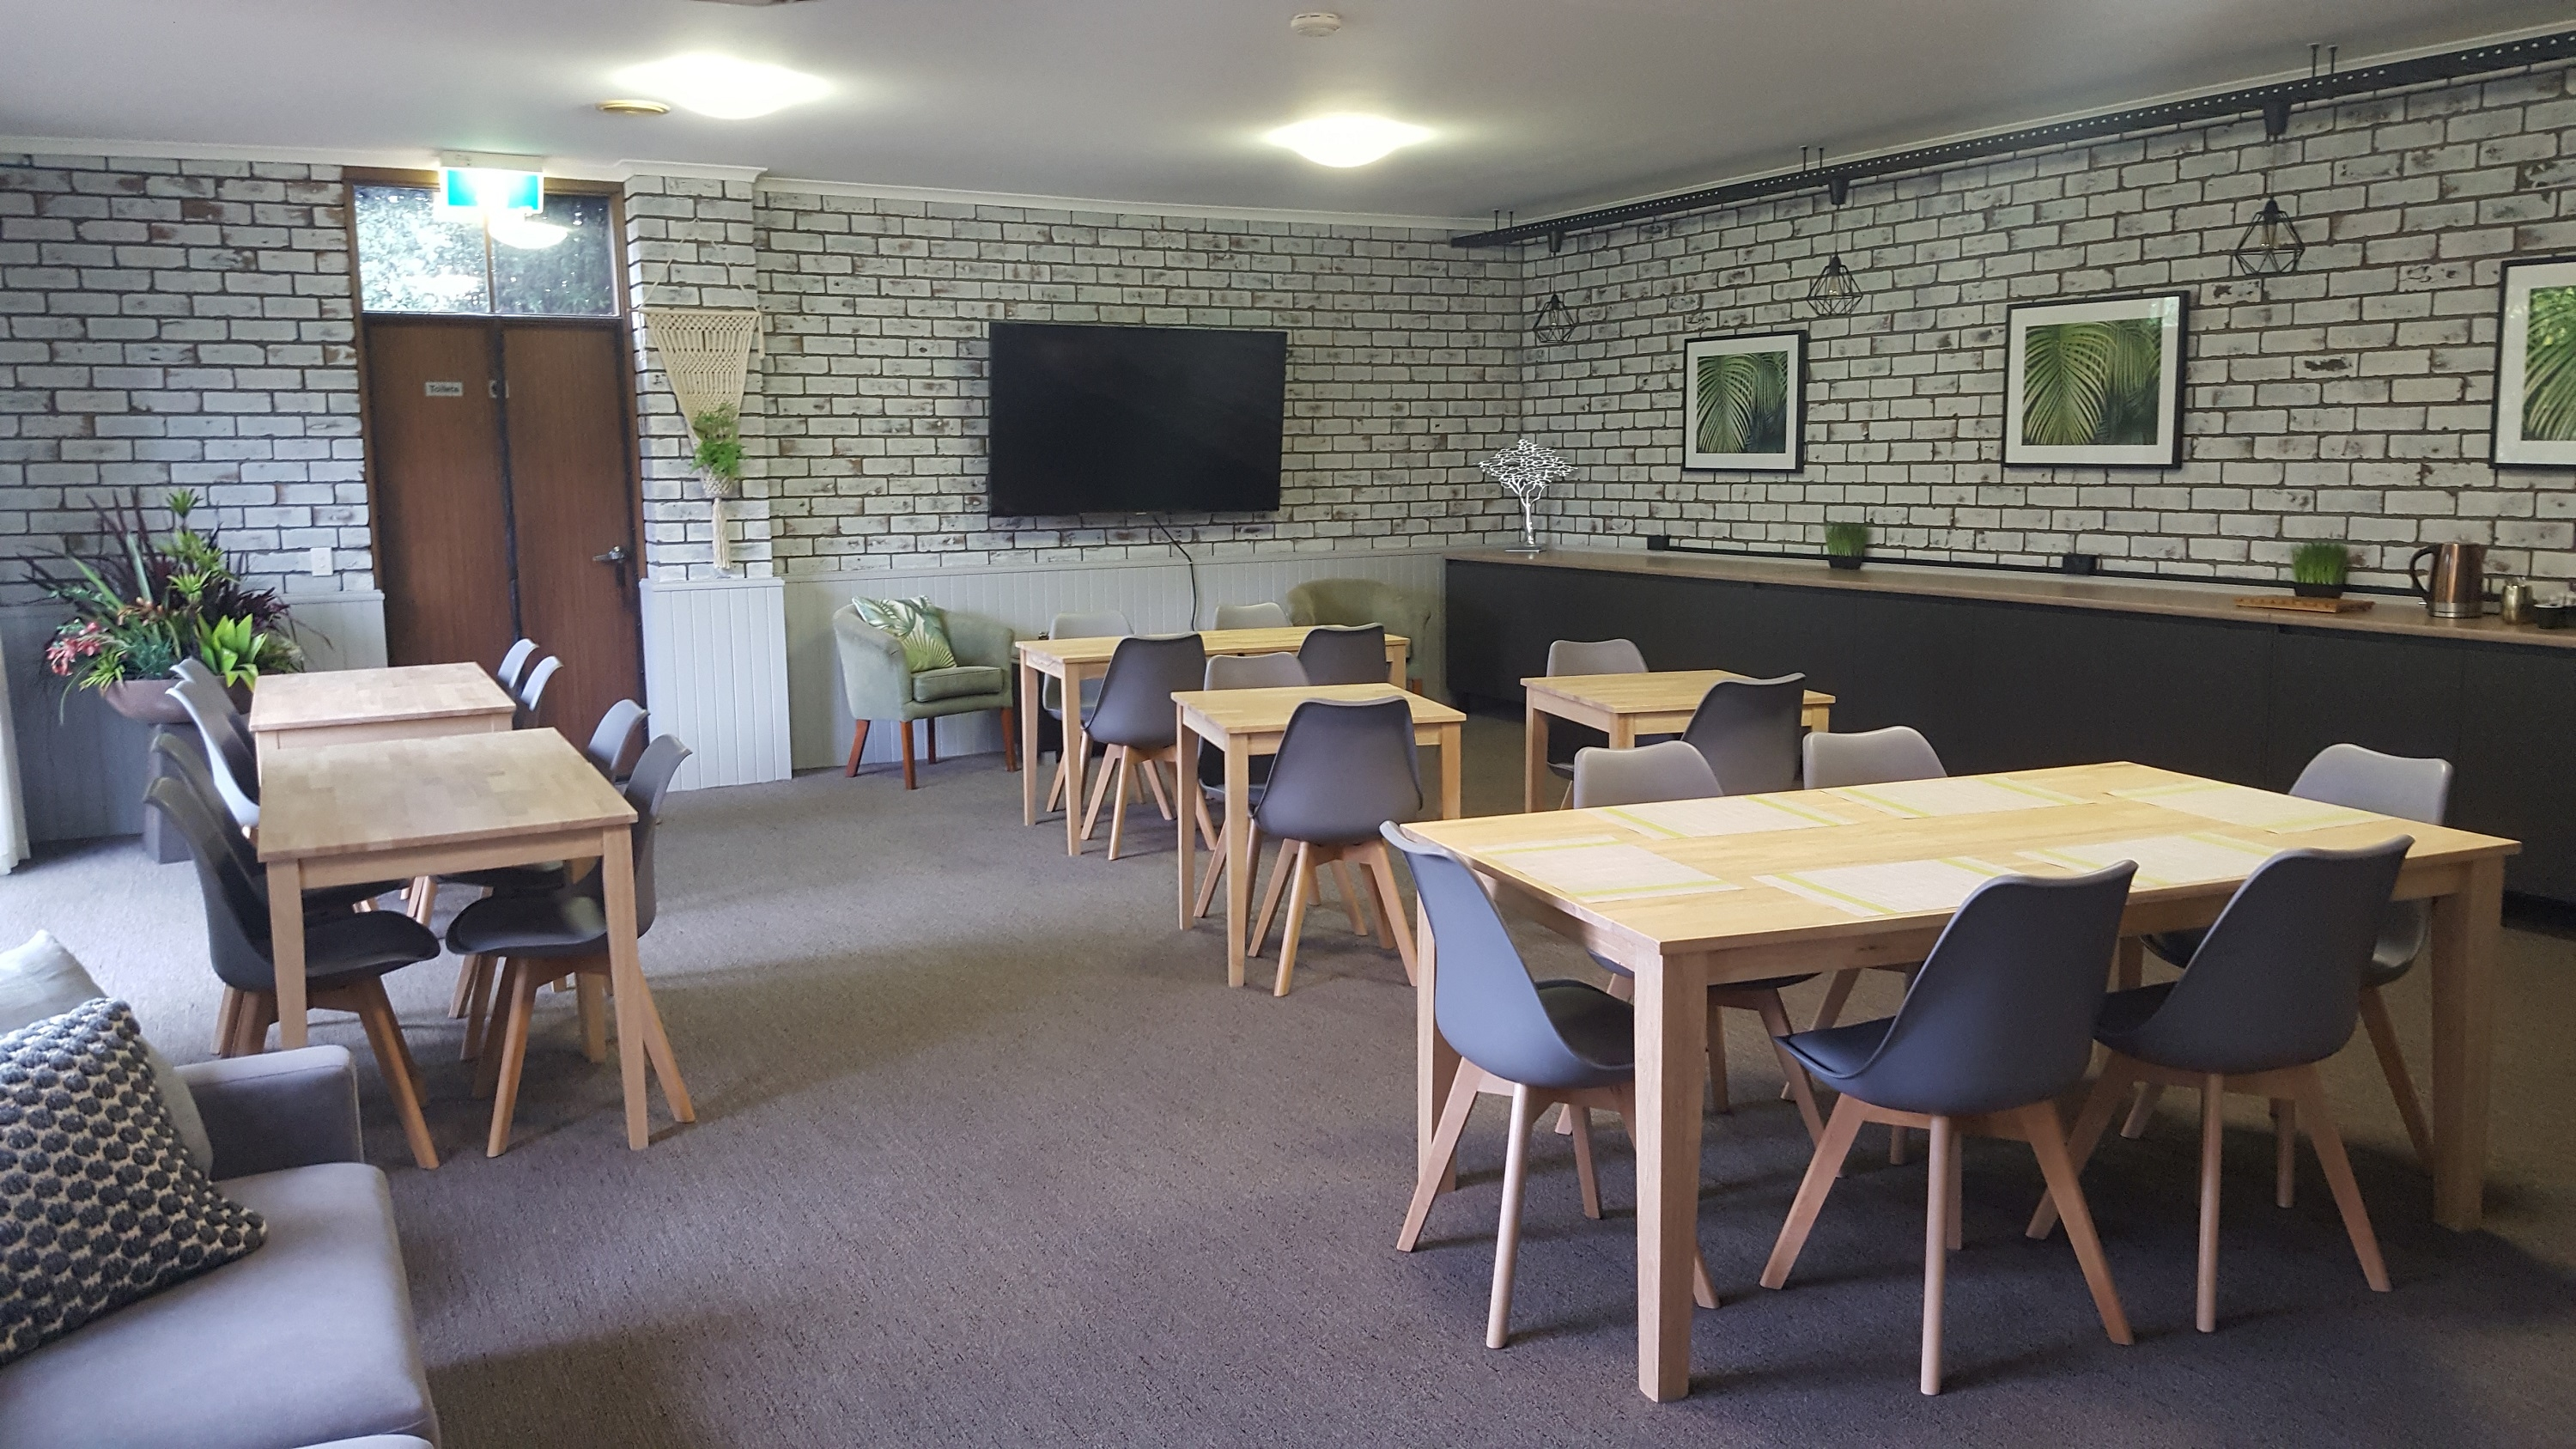 The Meeting Room at The Heritage Bendigo Motel